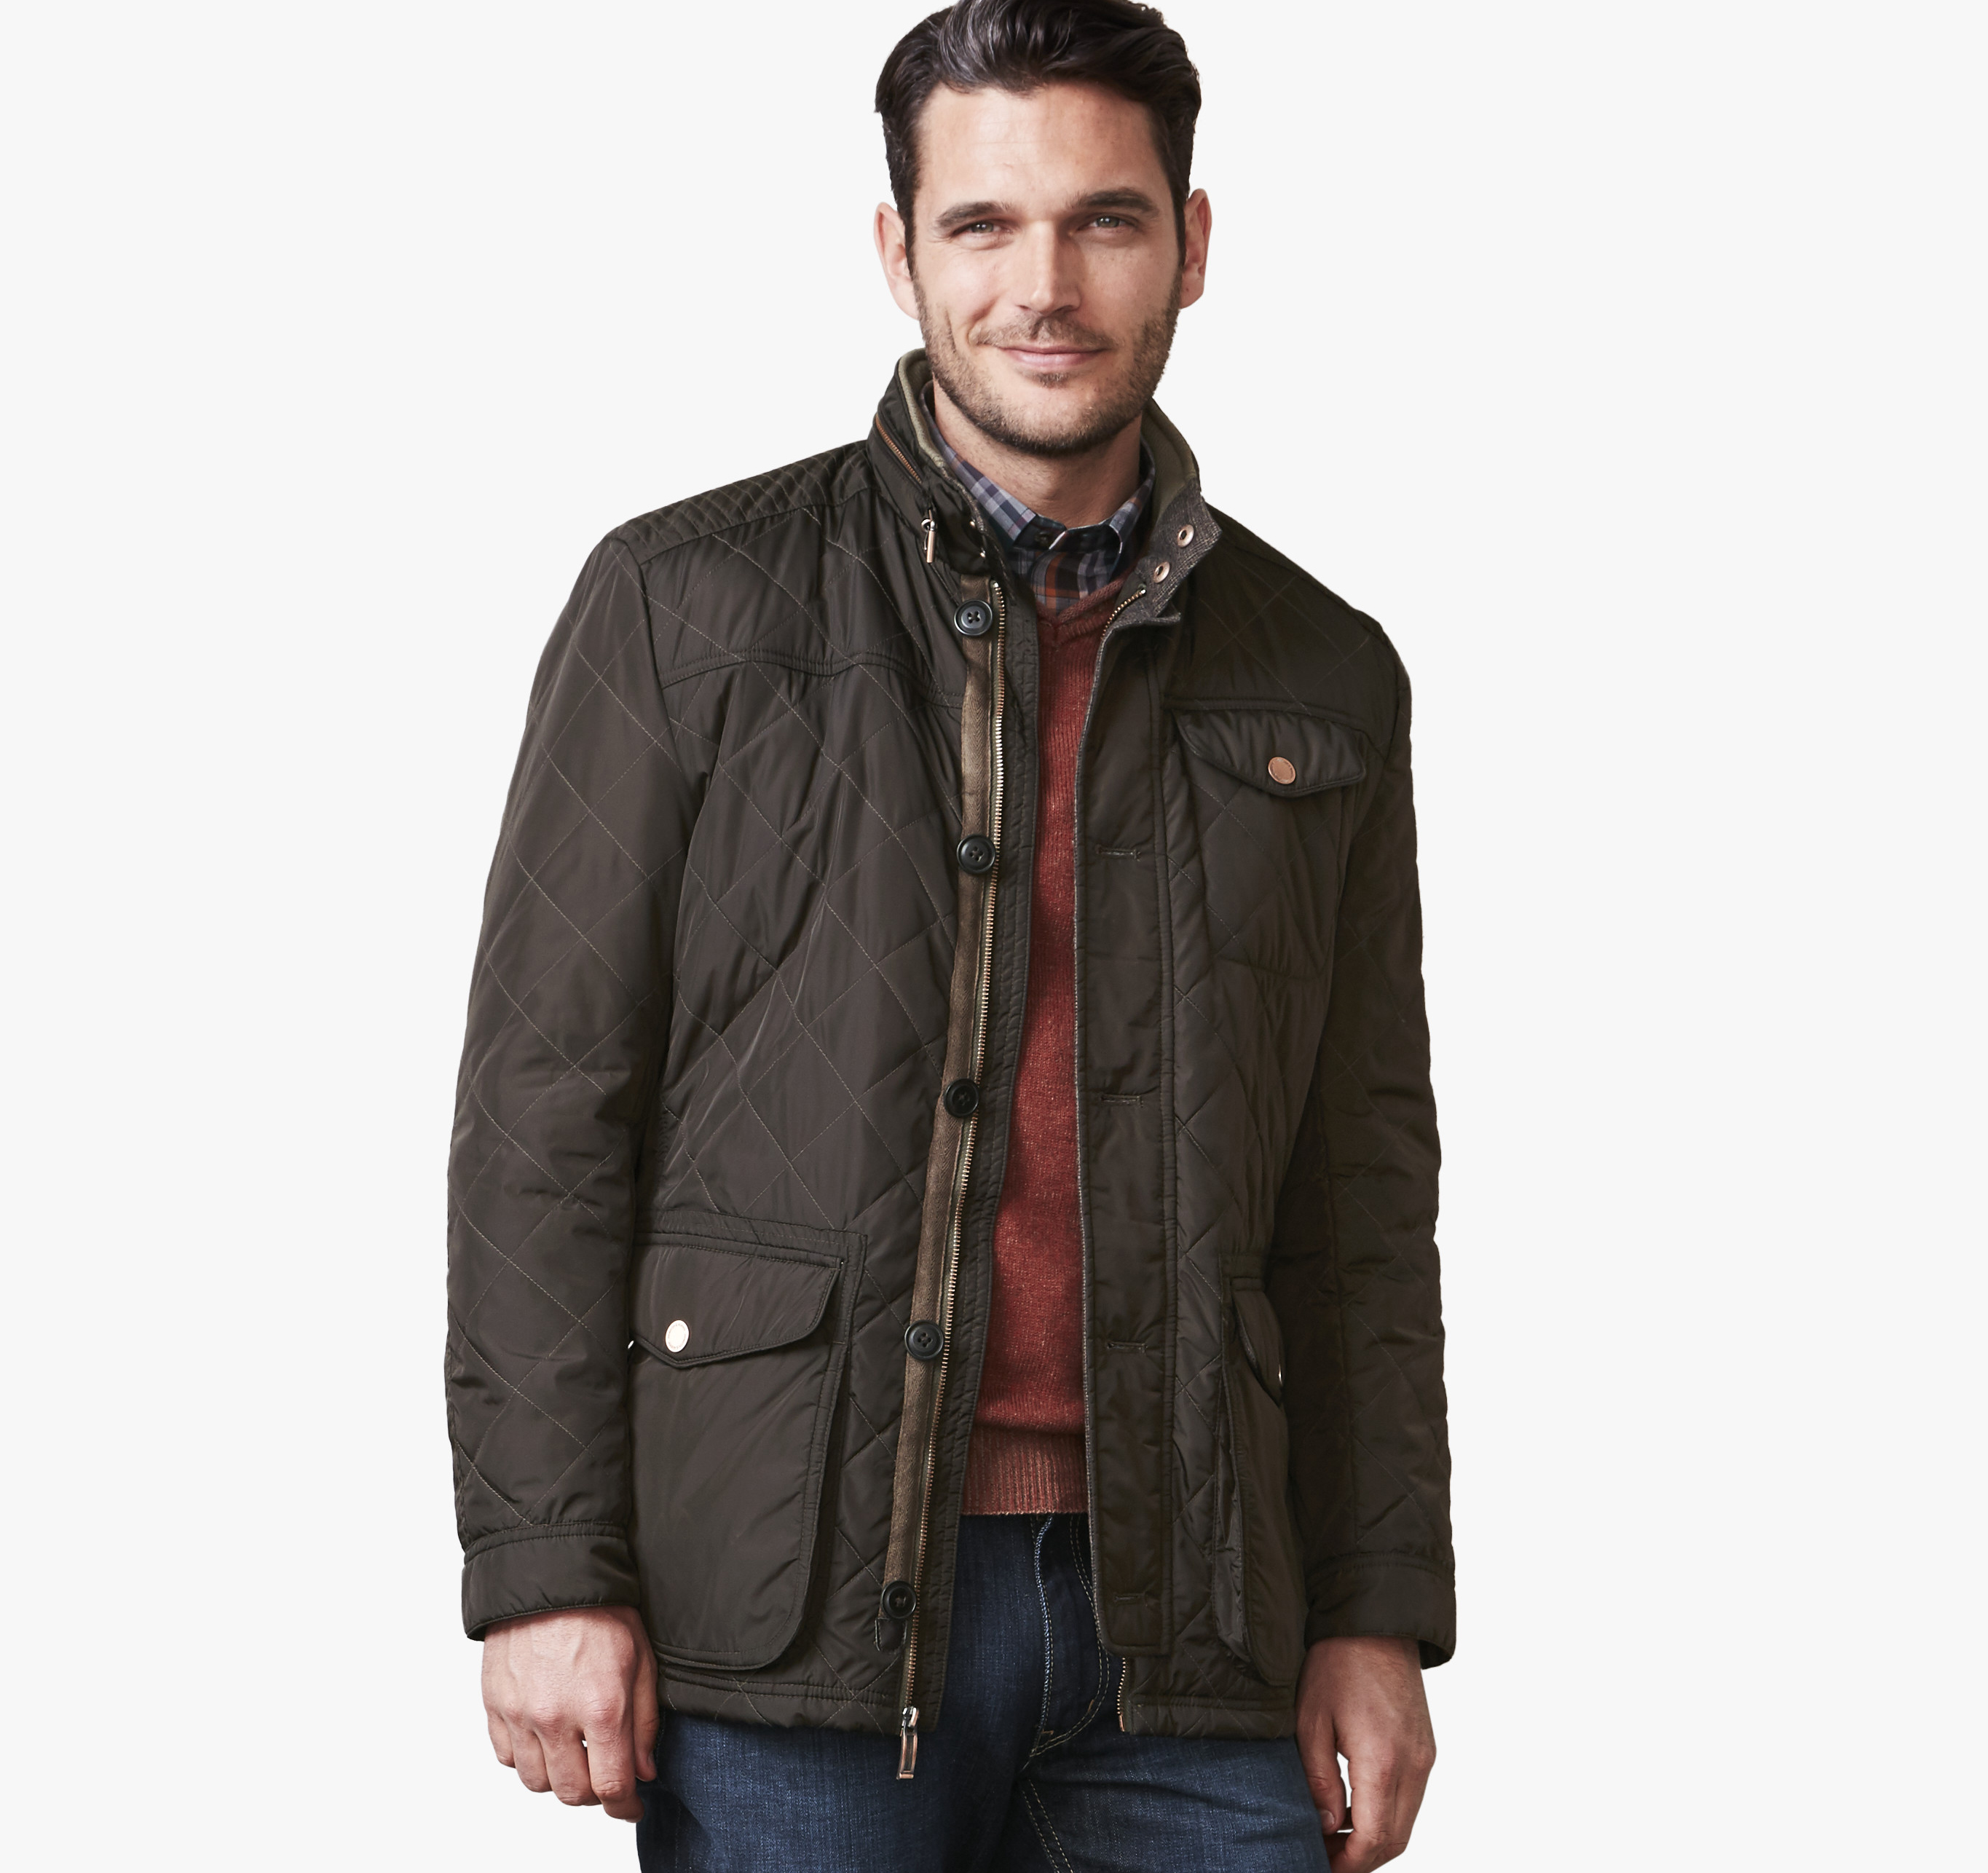 2177624cc Johnston and murphy leather jackets - Hotel tonight promo code $50